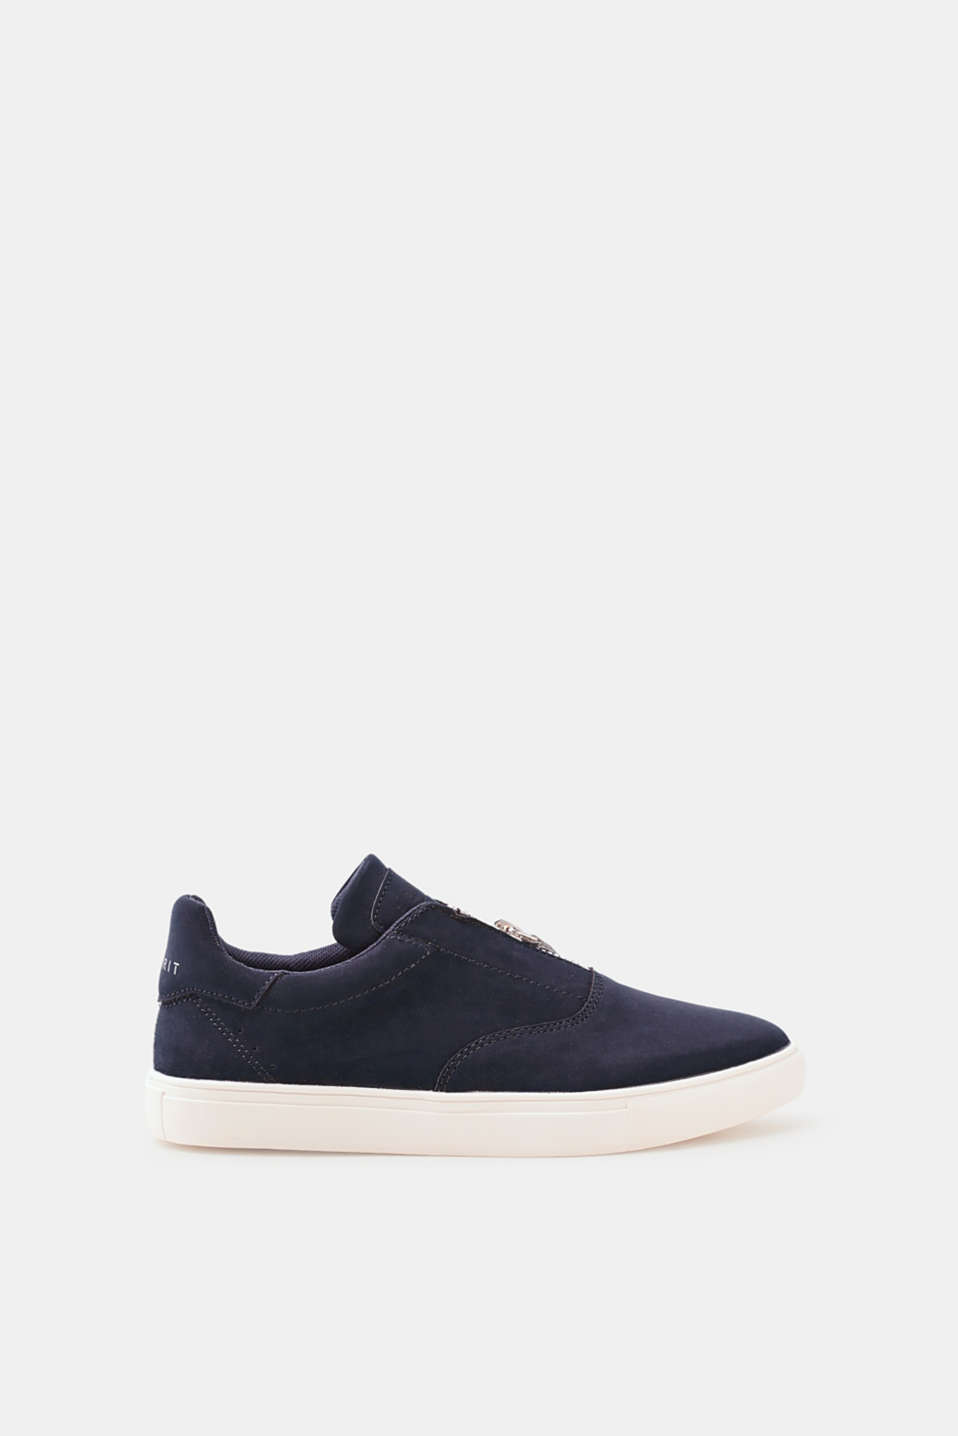 Esprit - Trend trainers with a zip, in faux nubuck leather